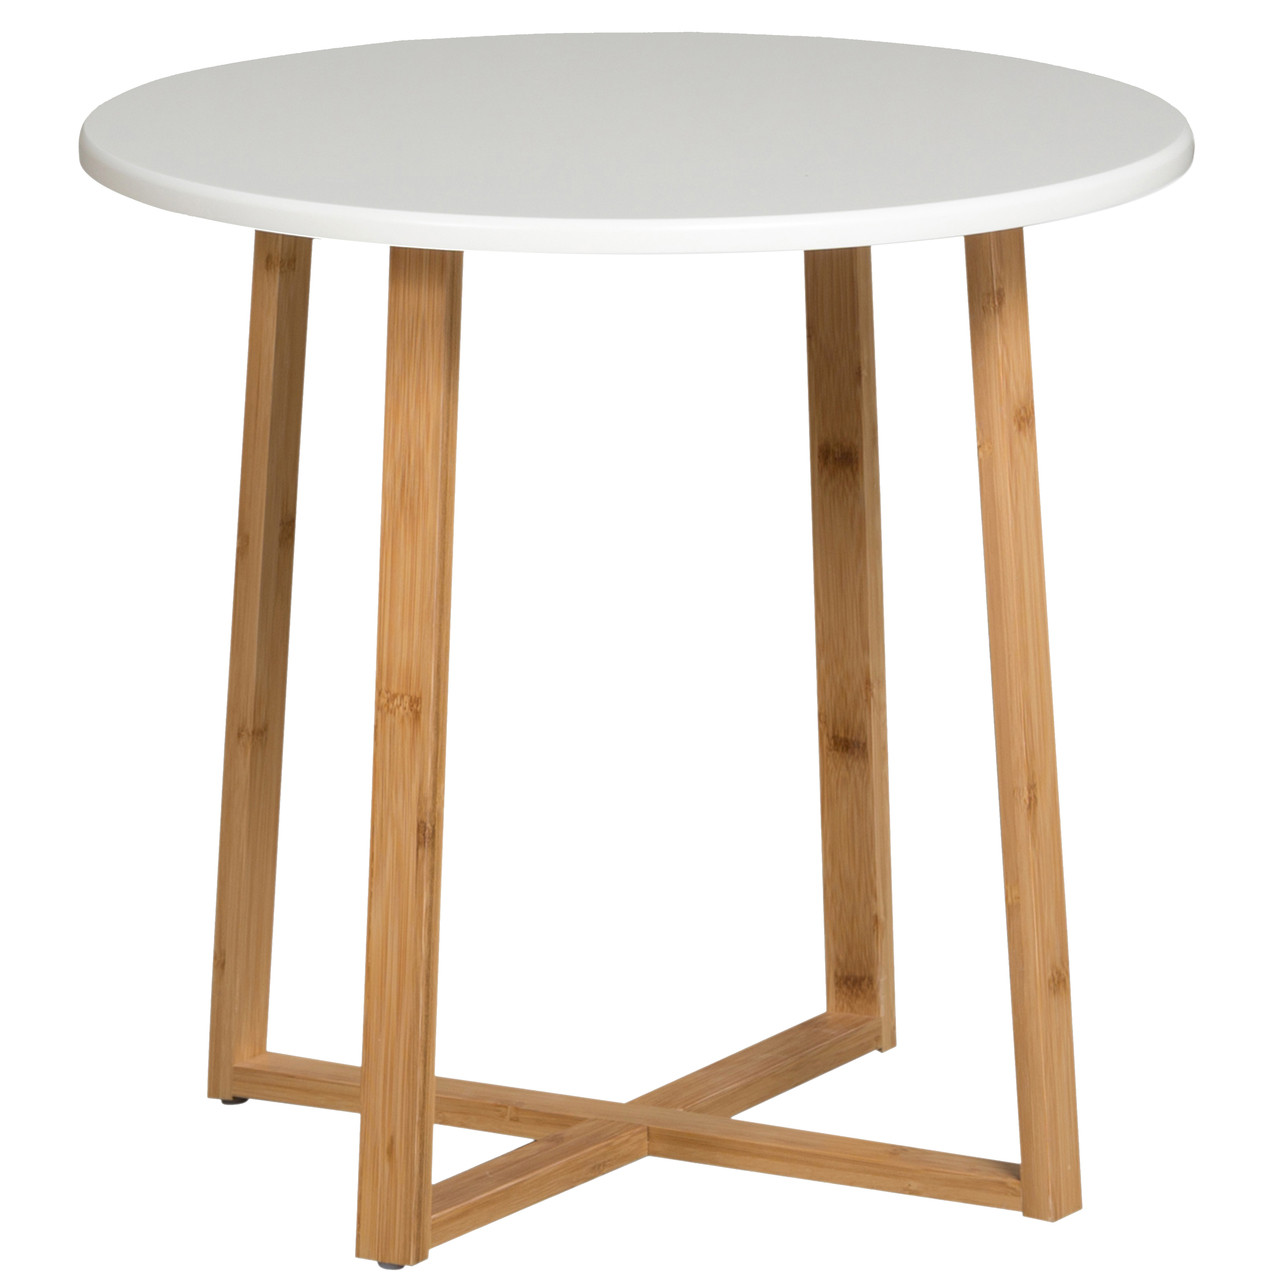 Large Round Table White Casual Contemporary Living